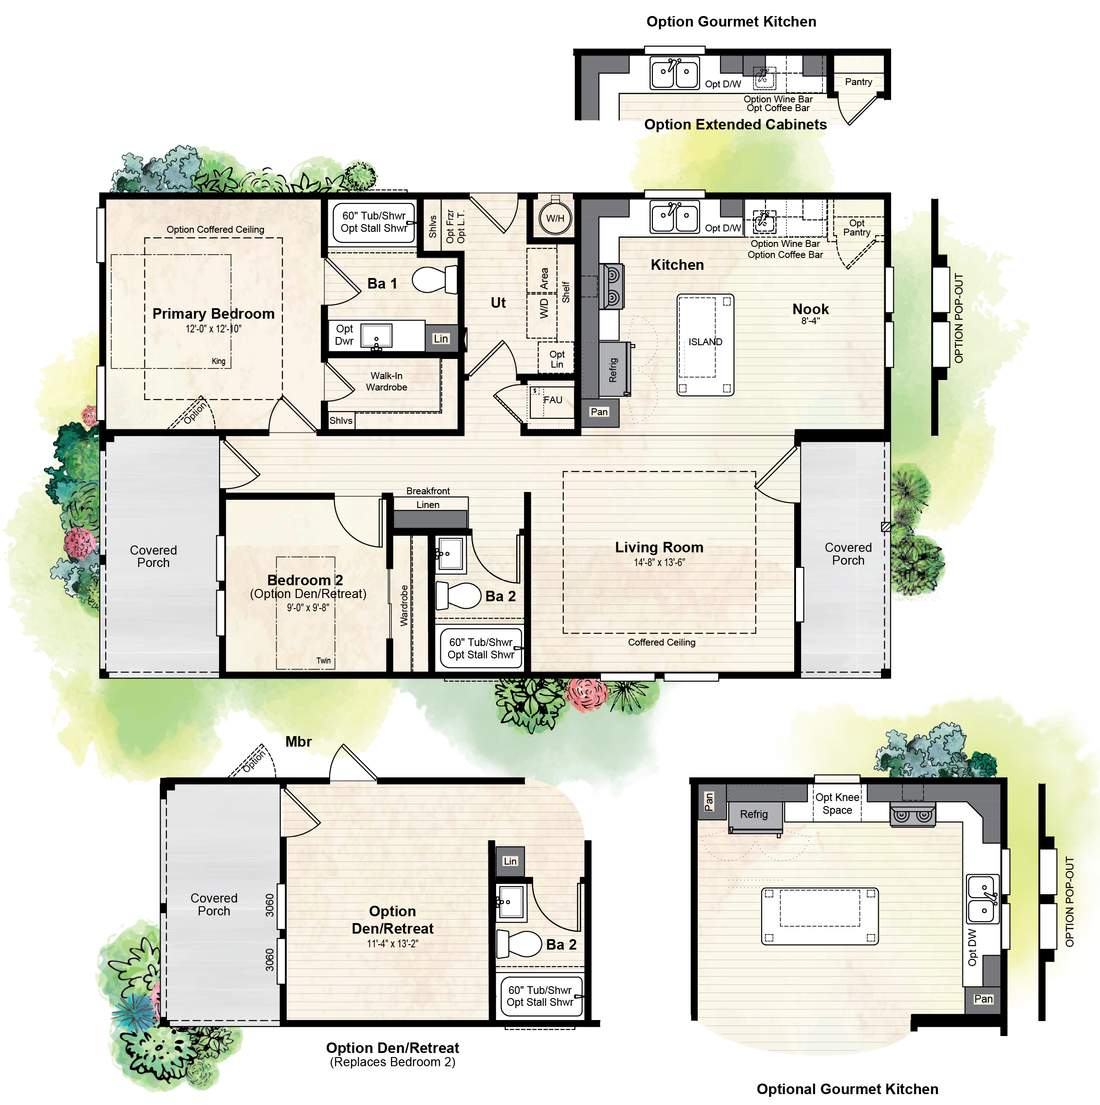 The GPII-2744-2C ORCHARD RANCH Floor Plan